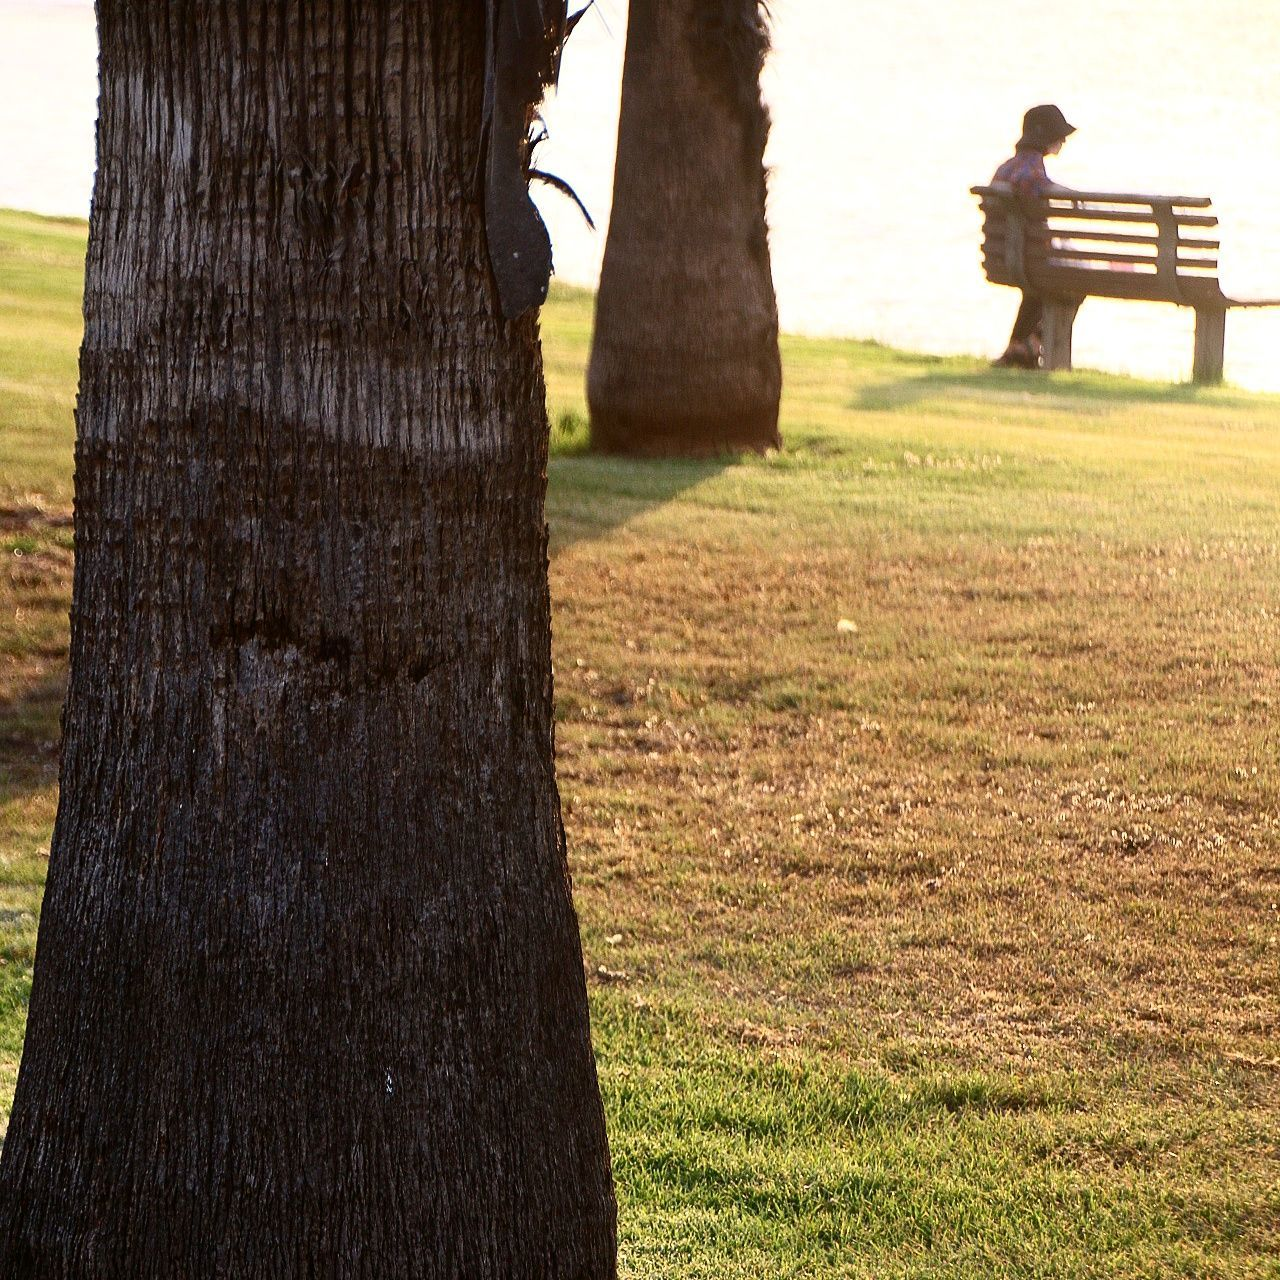 tree trunk, tree, nature, grass, outdoors, day, adult, care, responsibility, men, one person, one man only, people, adults only, only men